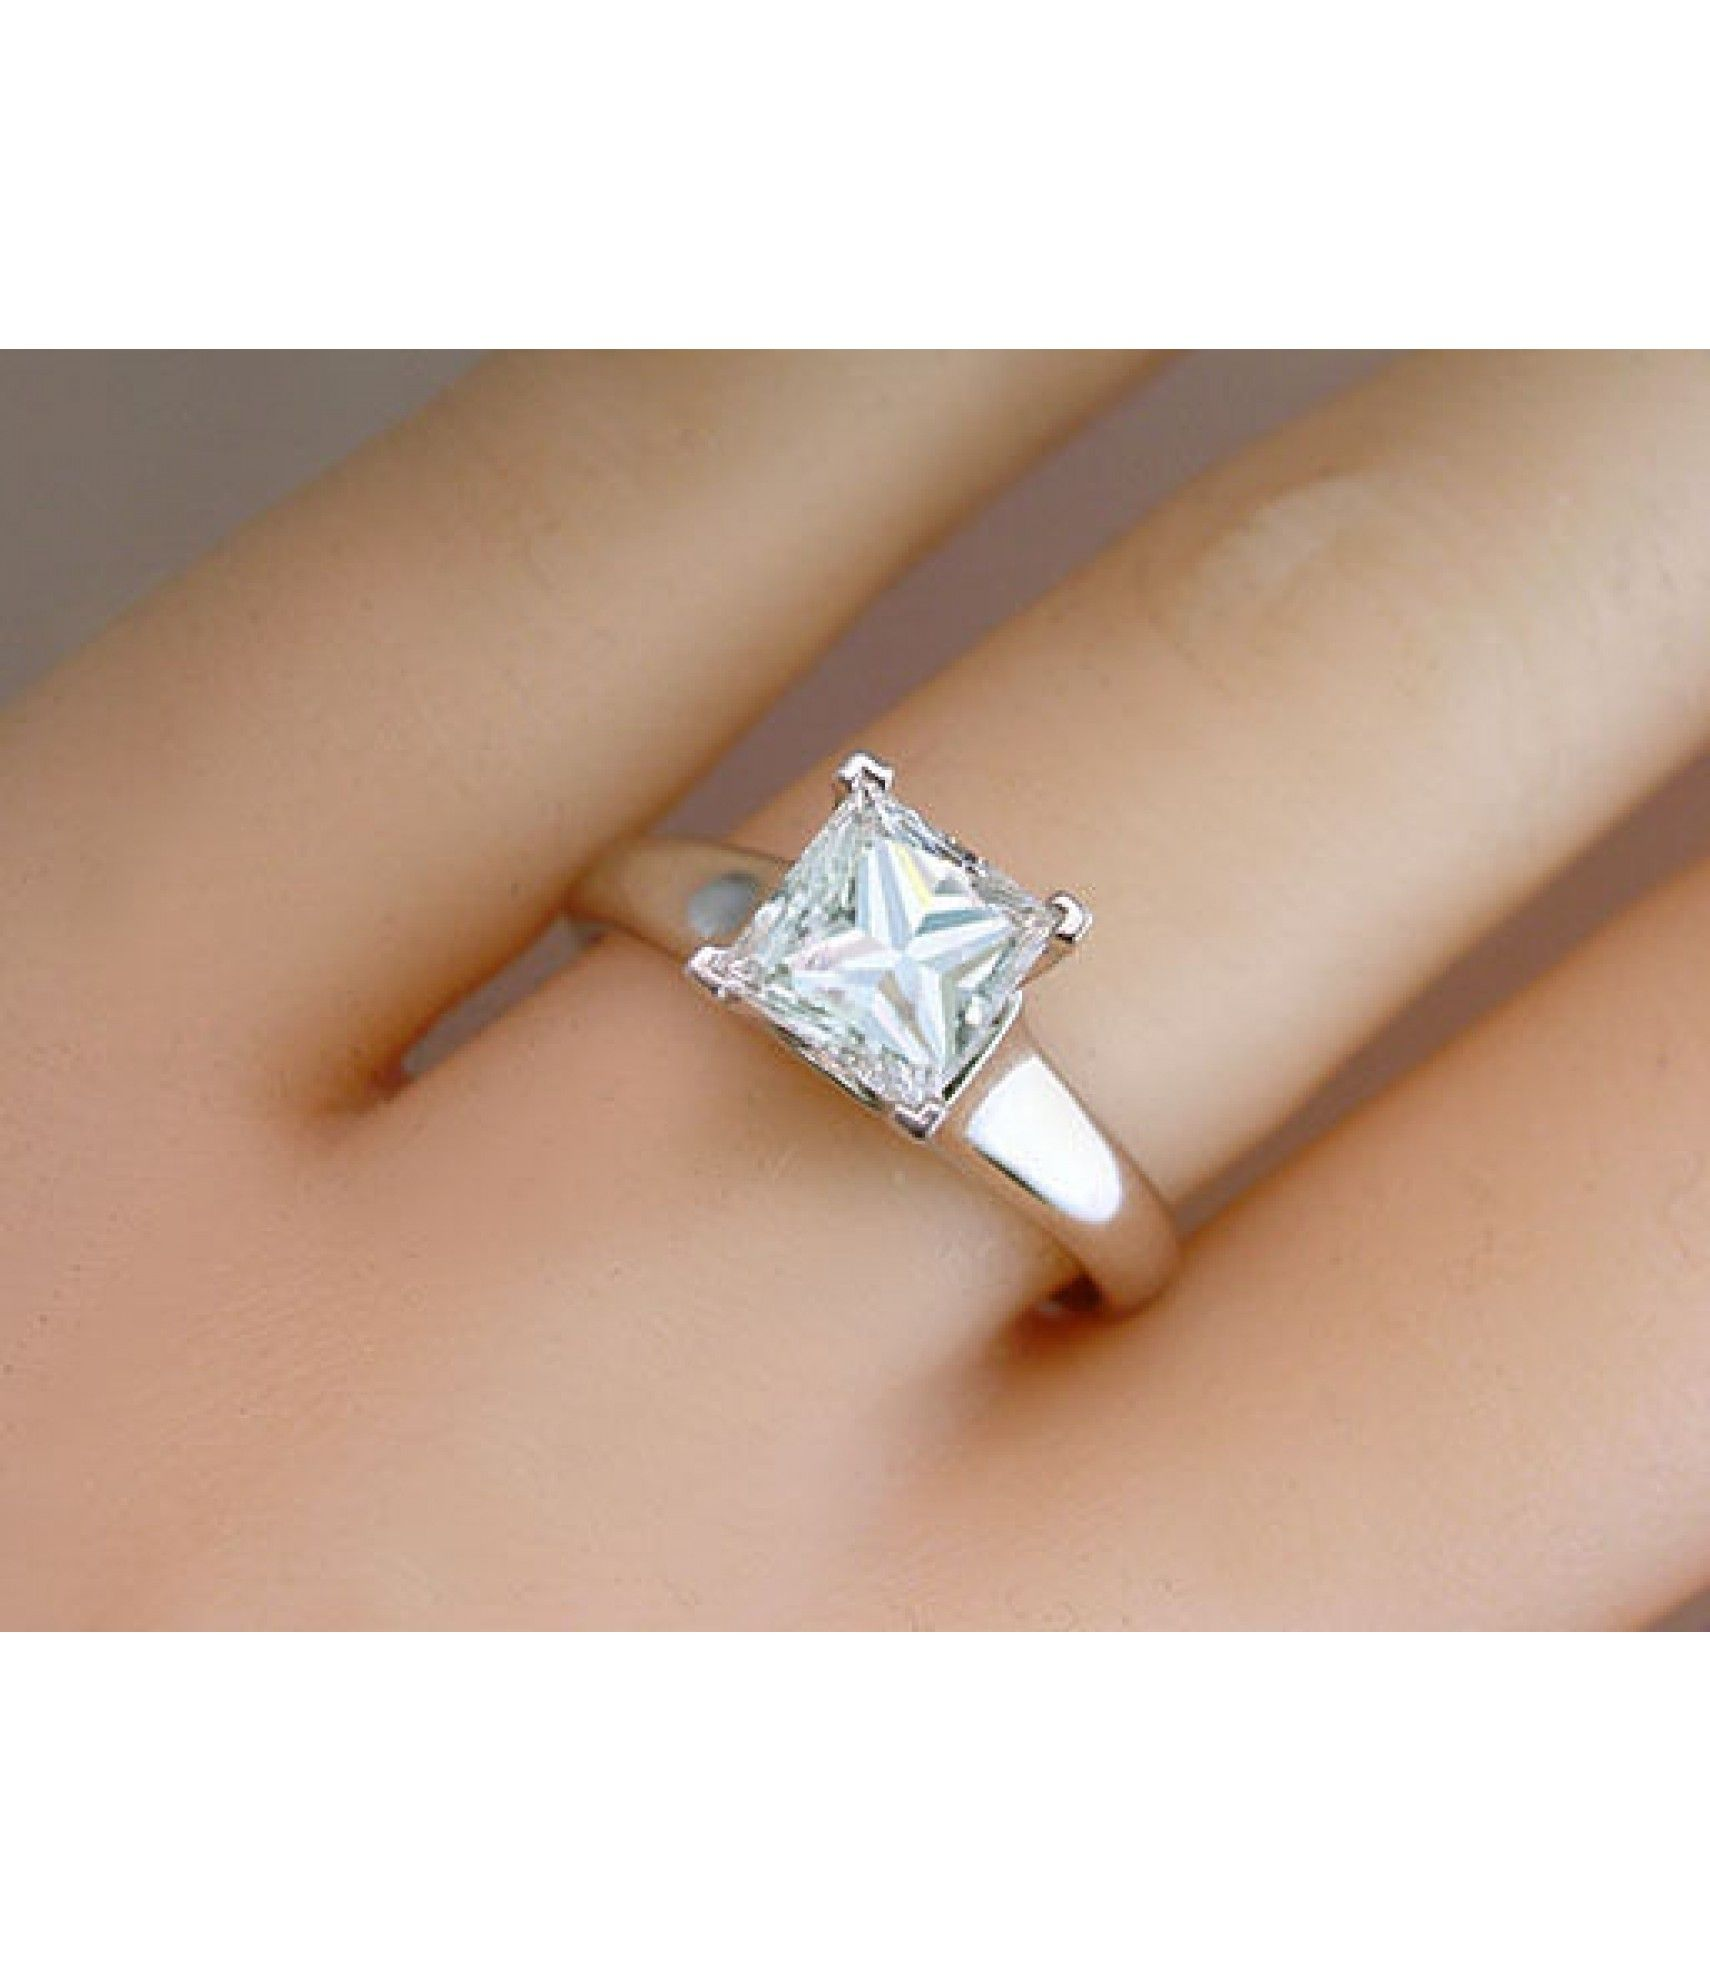 pin engagement platinum edwardian antique solitaire ring diamond